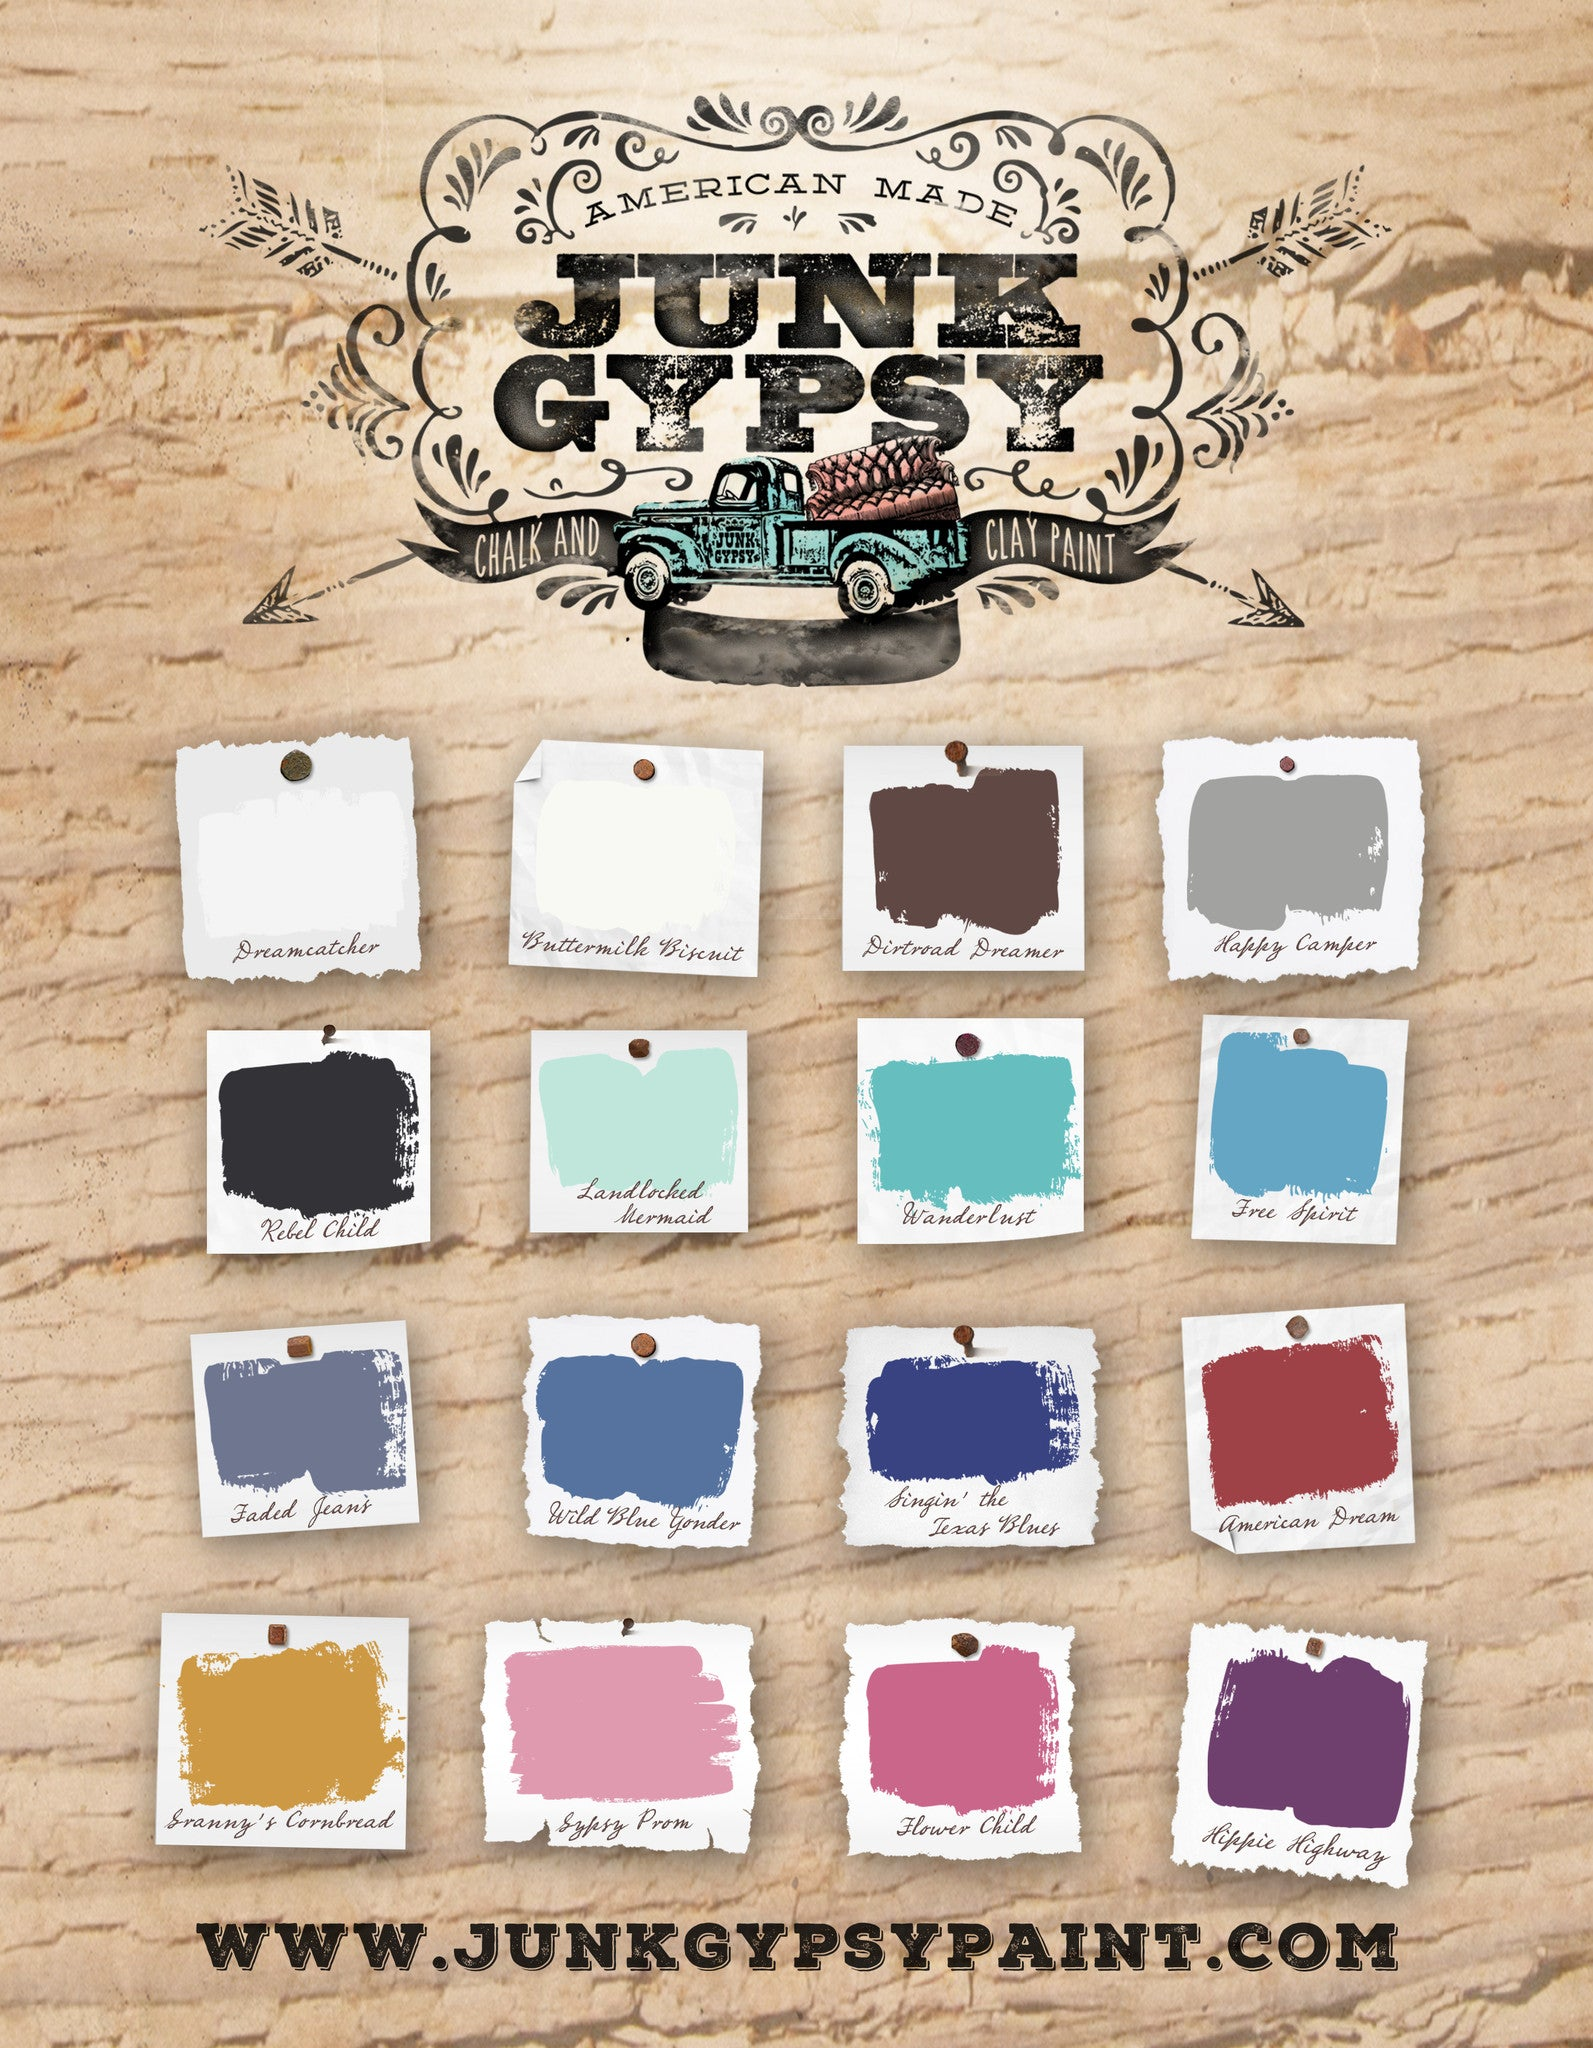 Junk Gypsy Paint - Faded Jeans - 8oz - Chalk and Clay Paint